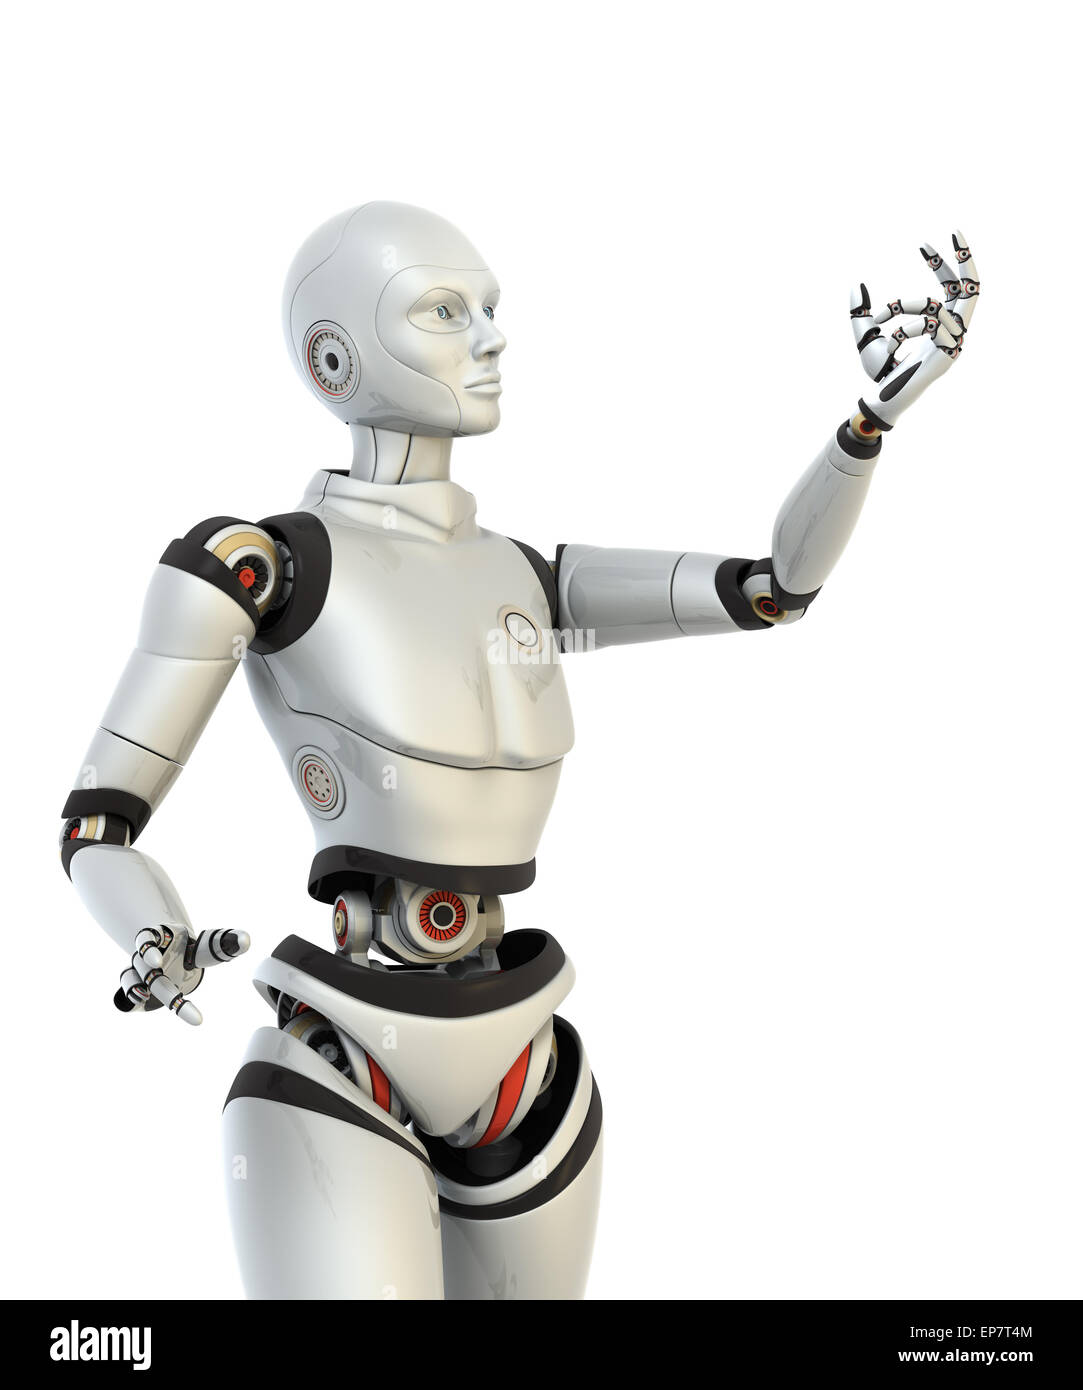 Robot holds something in his hand. Clipping path included - Stock Image